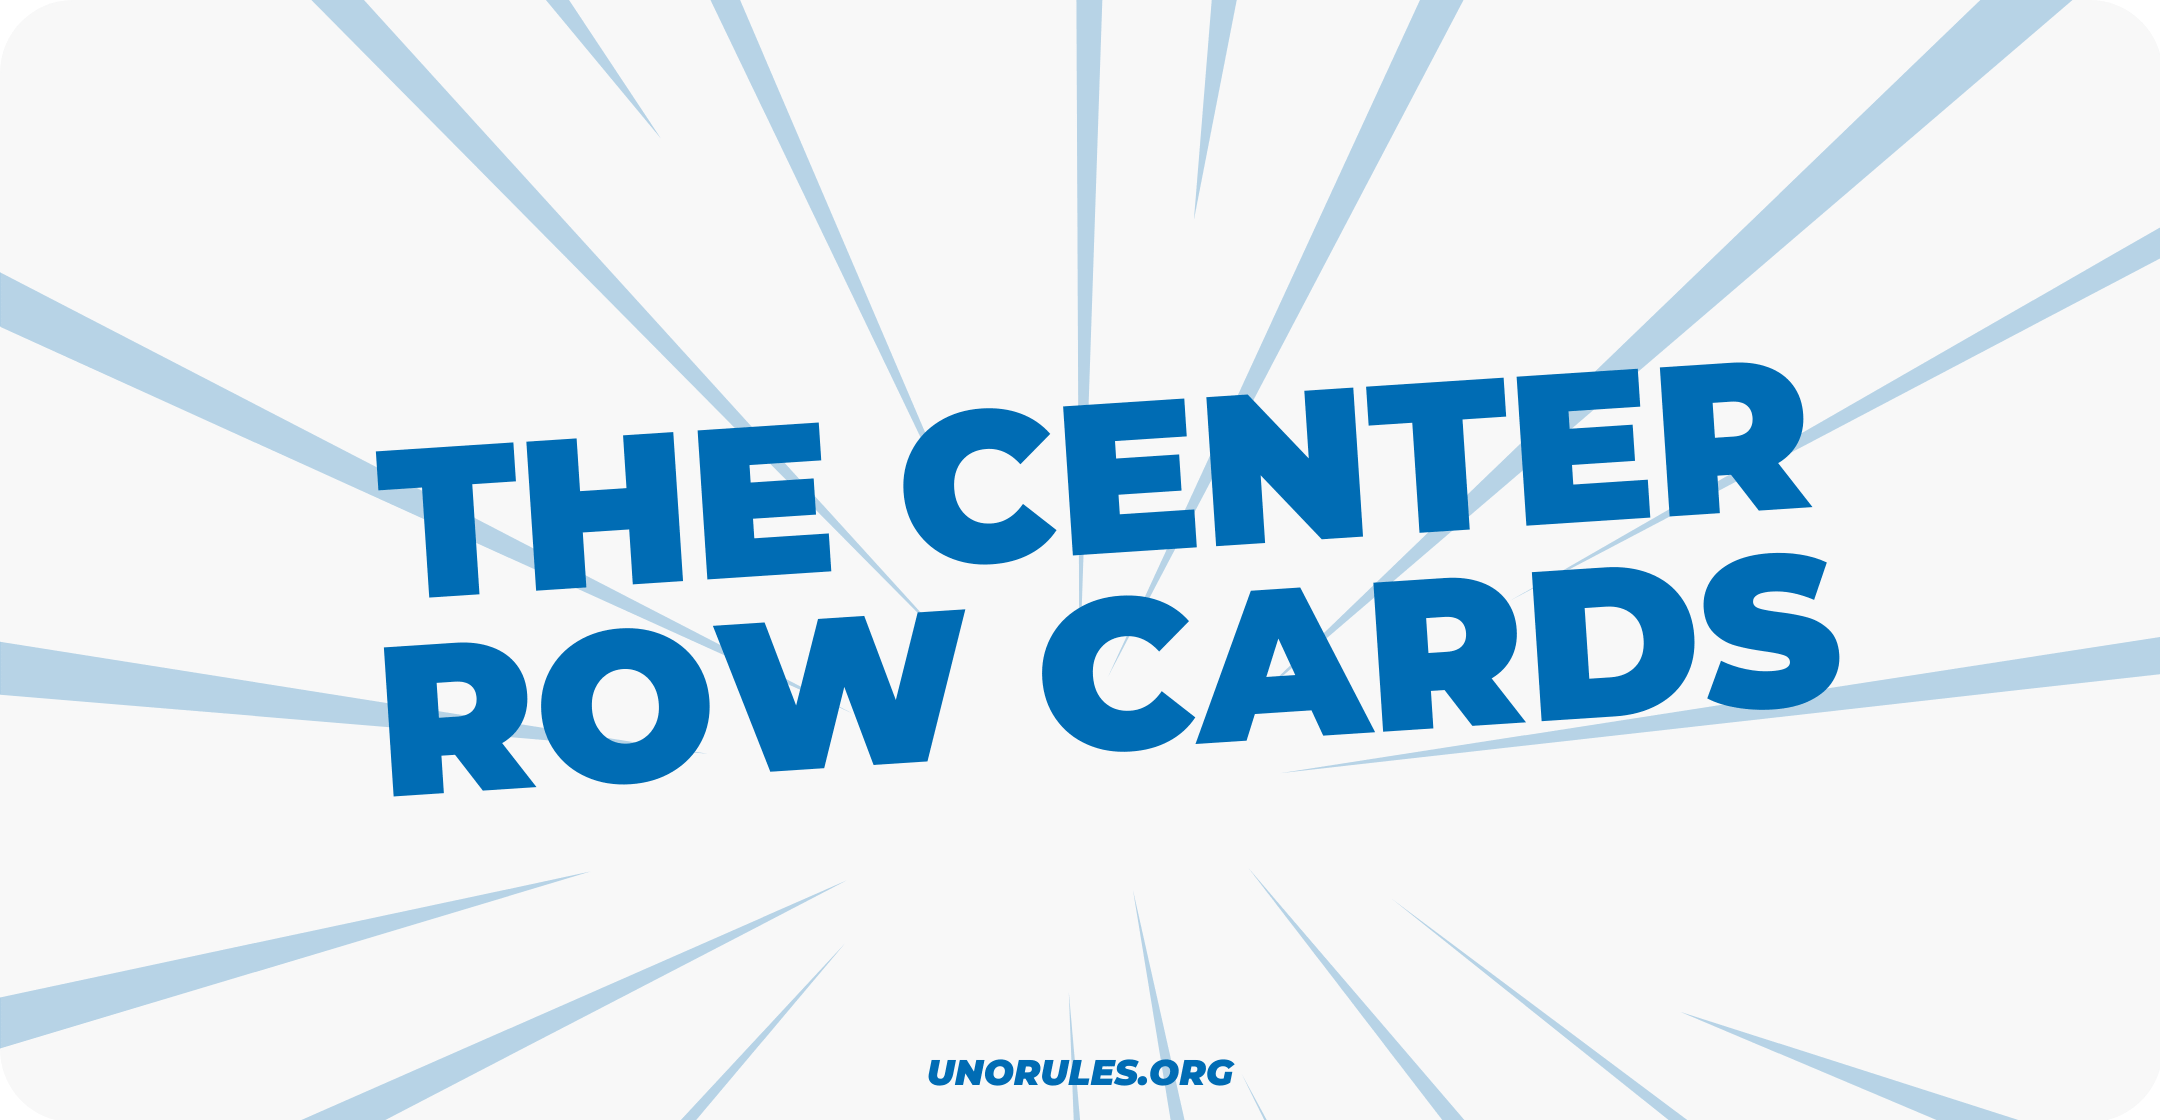 Important about the center row cards